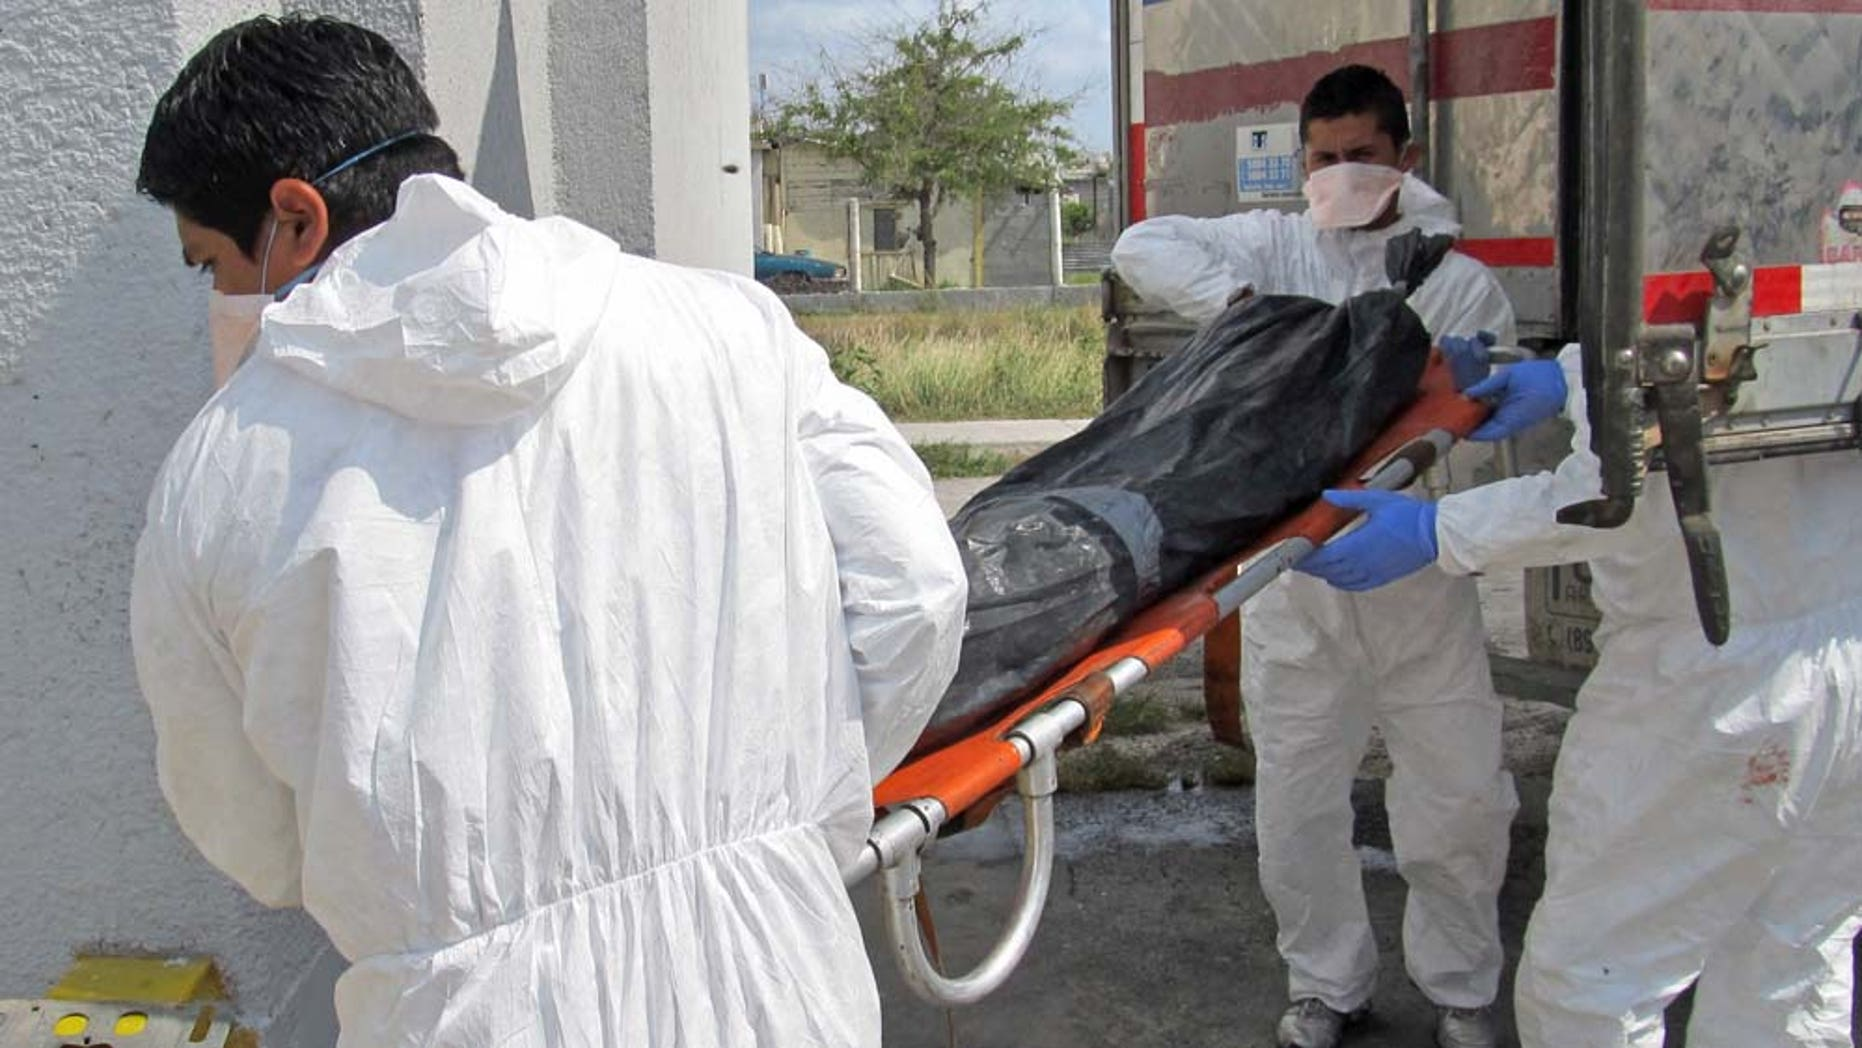 Morgue employees unload a body  from a refrigerated truck into the local morgue in Matamoros, northern Mexico, Wednesday April 13, 2011. Mexican investigators have found a total of 116 bodies in Tamaulipas state in pits near the U.S. border, 28 more than previously reported, Attorney General Marisela Morales said Tuesday. Morales said a total of 17 suspects have been detained in relation to the killings in the northern state of Tamaulipas, some of whom have purportedly confessed to abducting passengers from buses and killing them. (AP Photo/Rubios News)